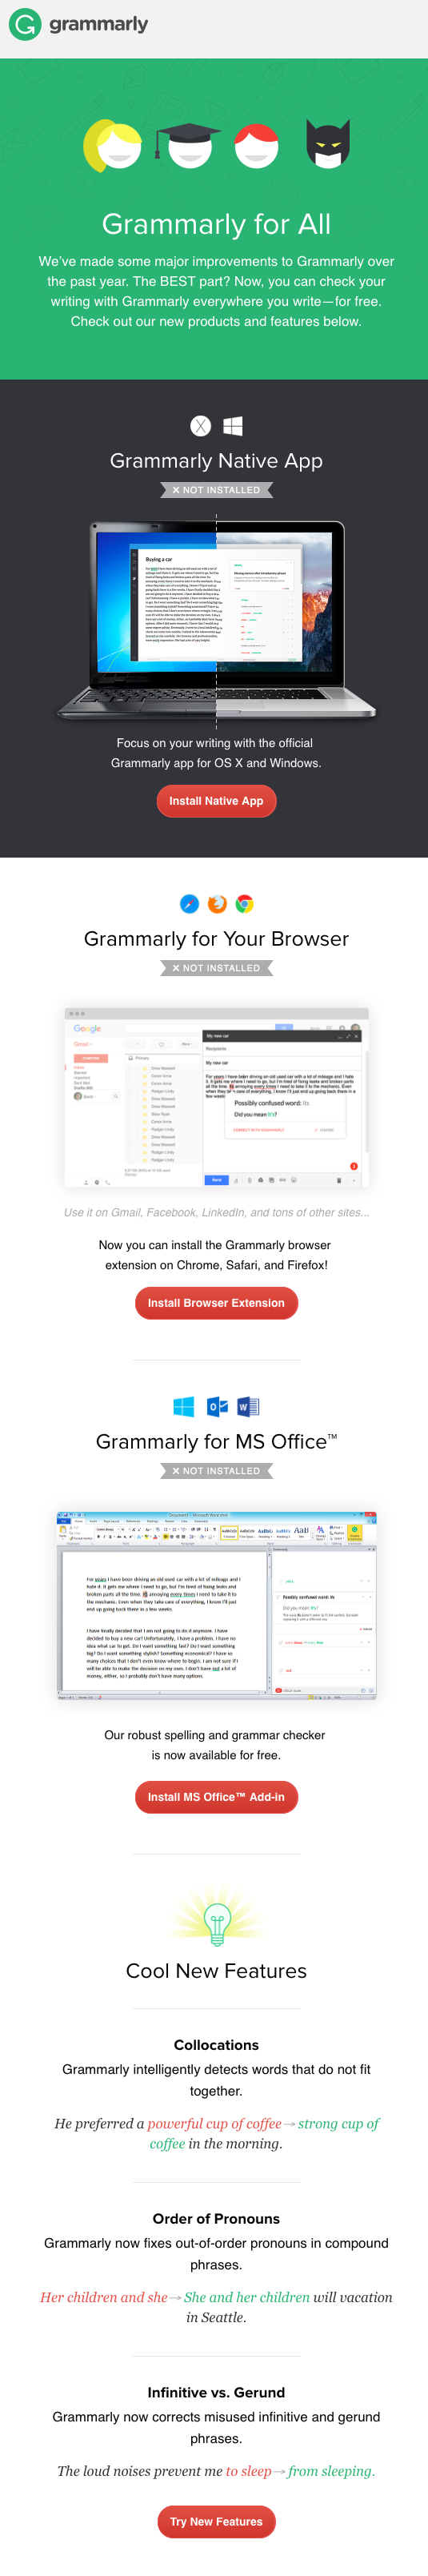 Grammarly For All-1.png